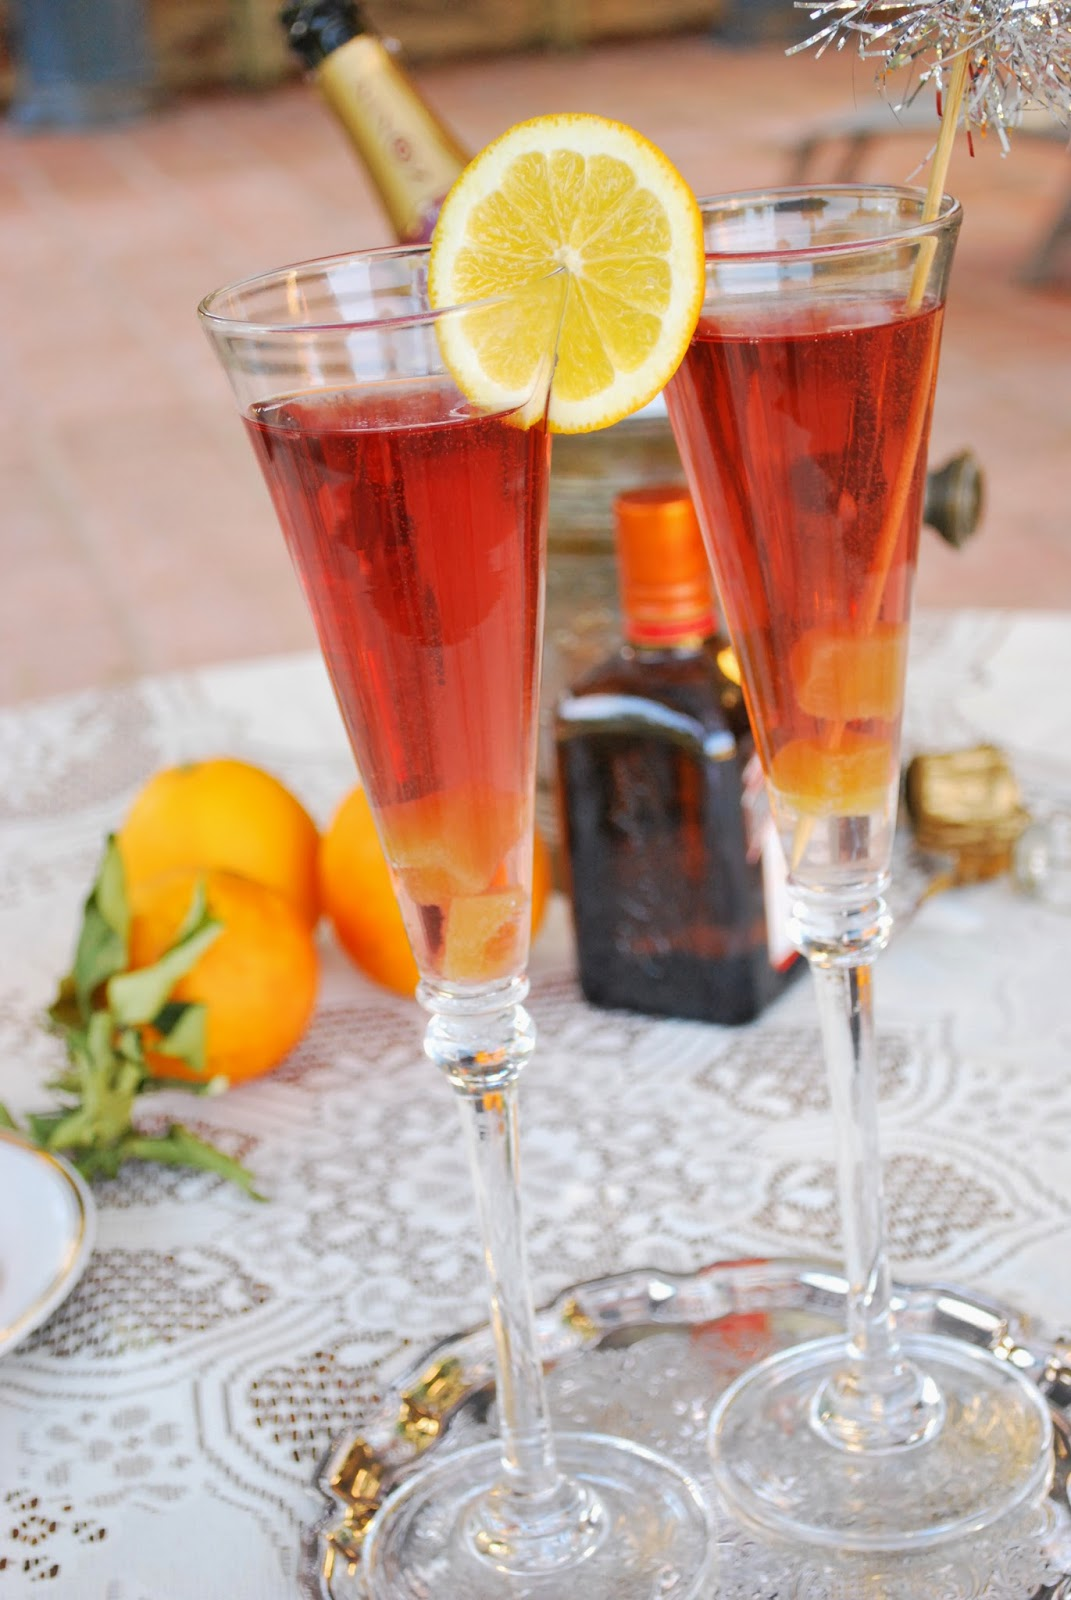 Celebrate any day of the week with this Ginger Cran-Orange Prosecco: a flavorful, colorful & bubbly cocktail!